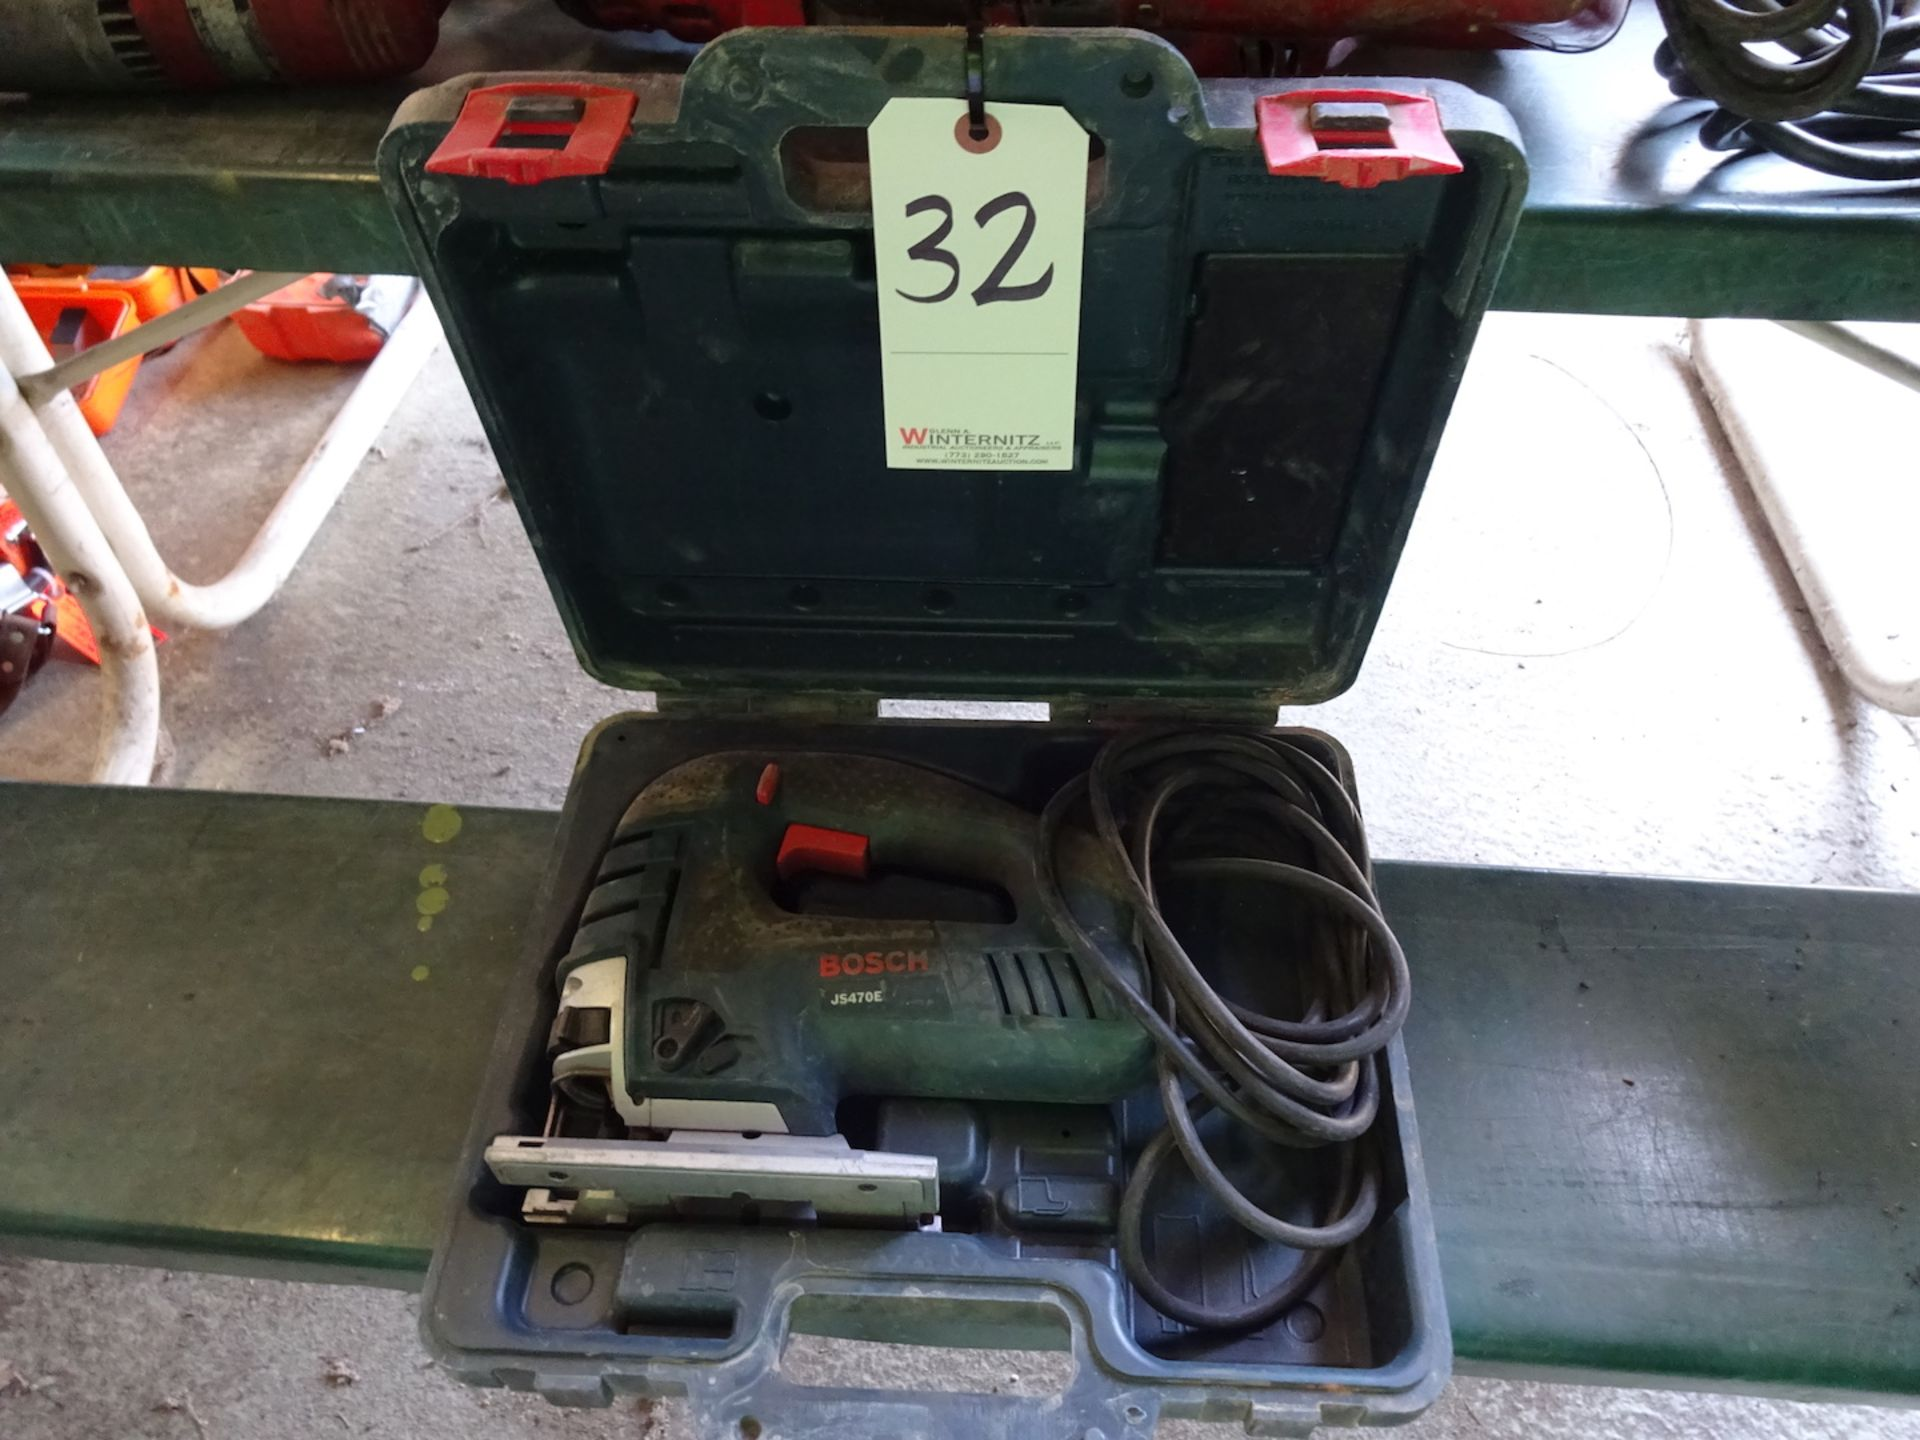 Lot 32 - BOSCH J5470E ELECTRIC JIG SAW WITH CASE